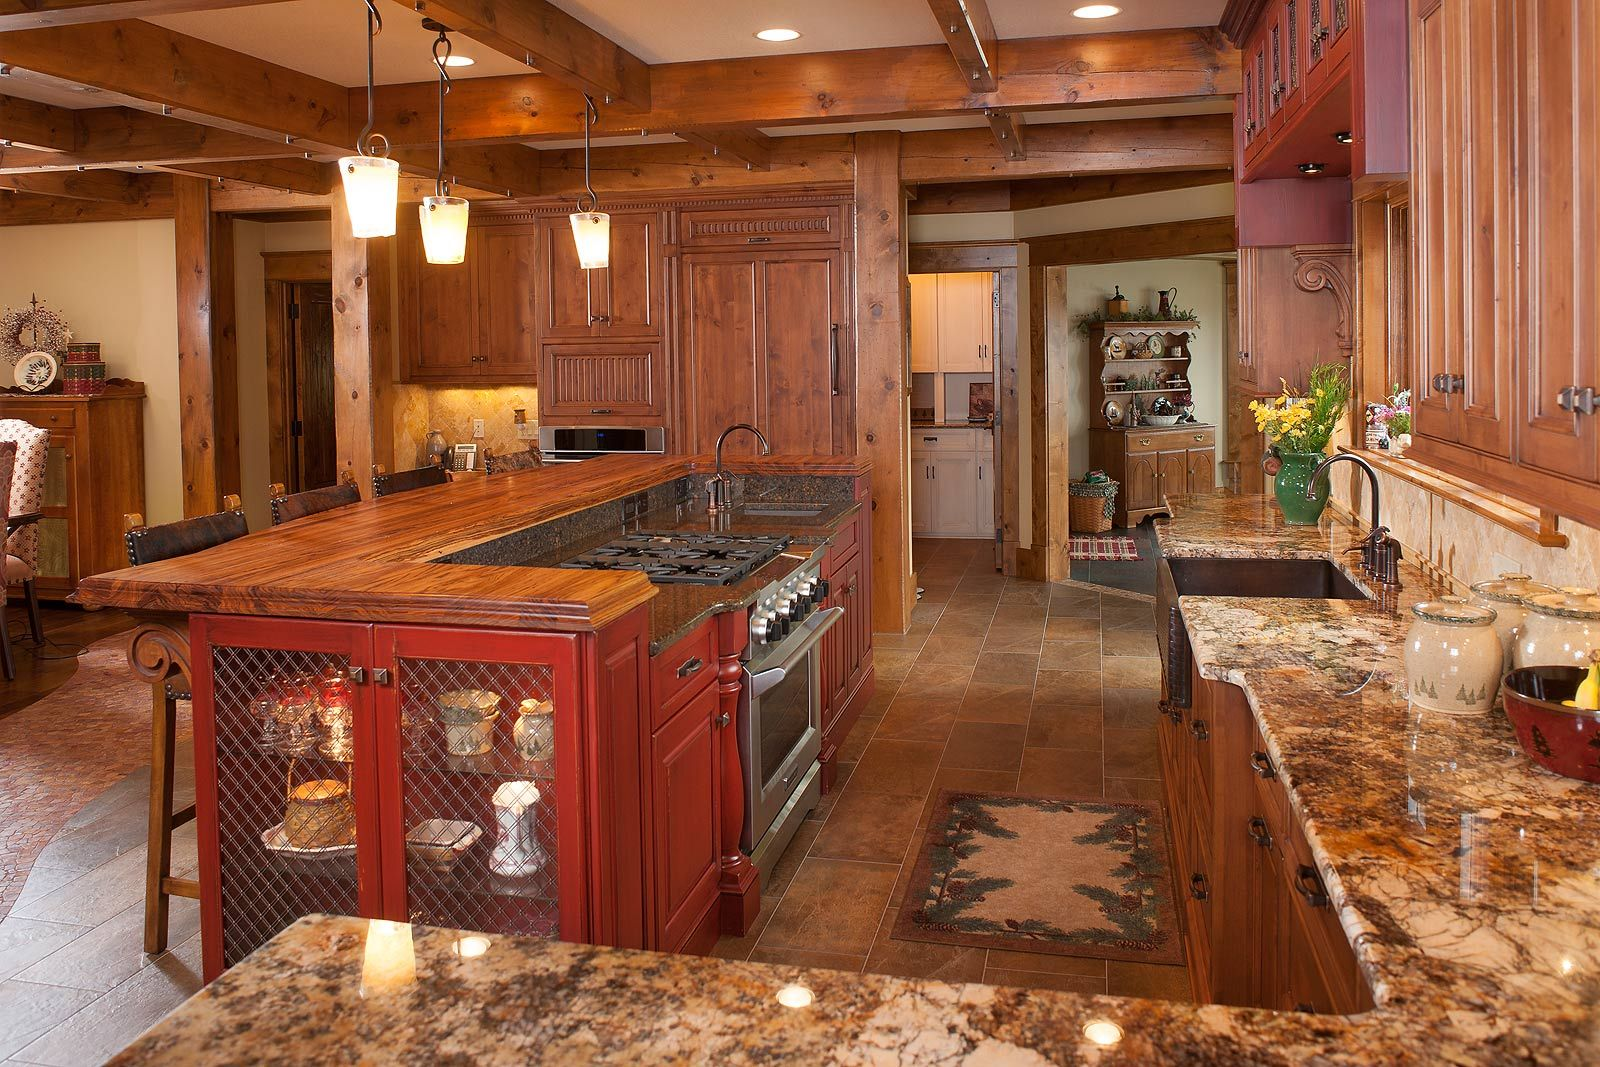 log cabin kitchen islands | Rustic Kitchen Island for Rustic Kitchen ...